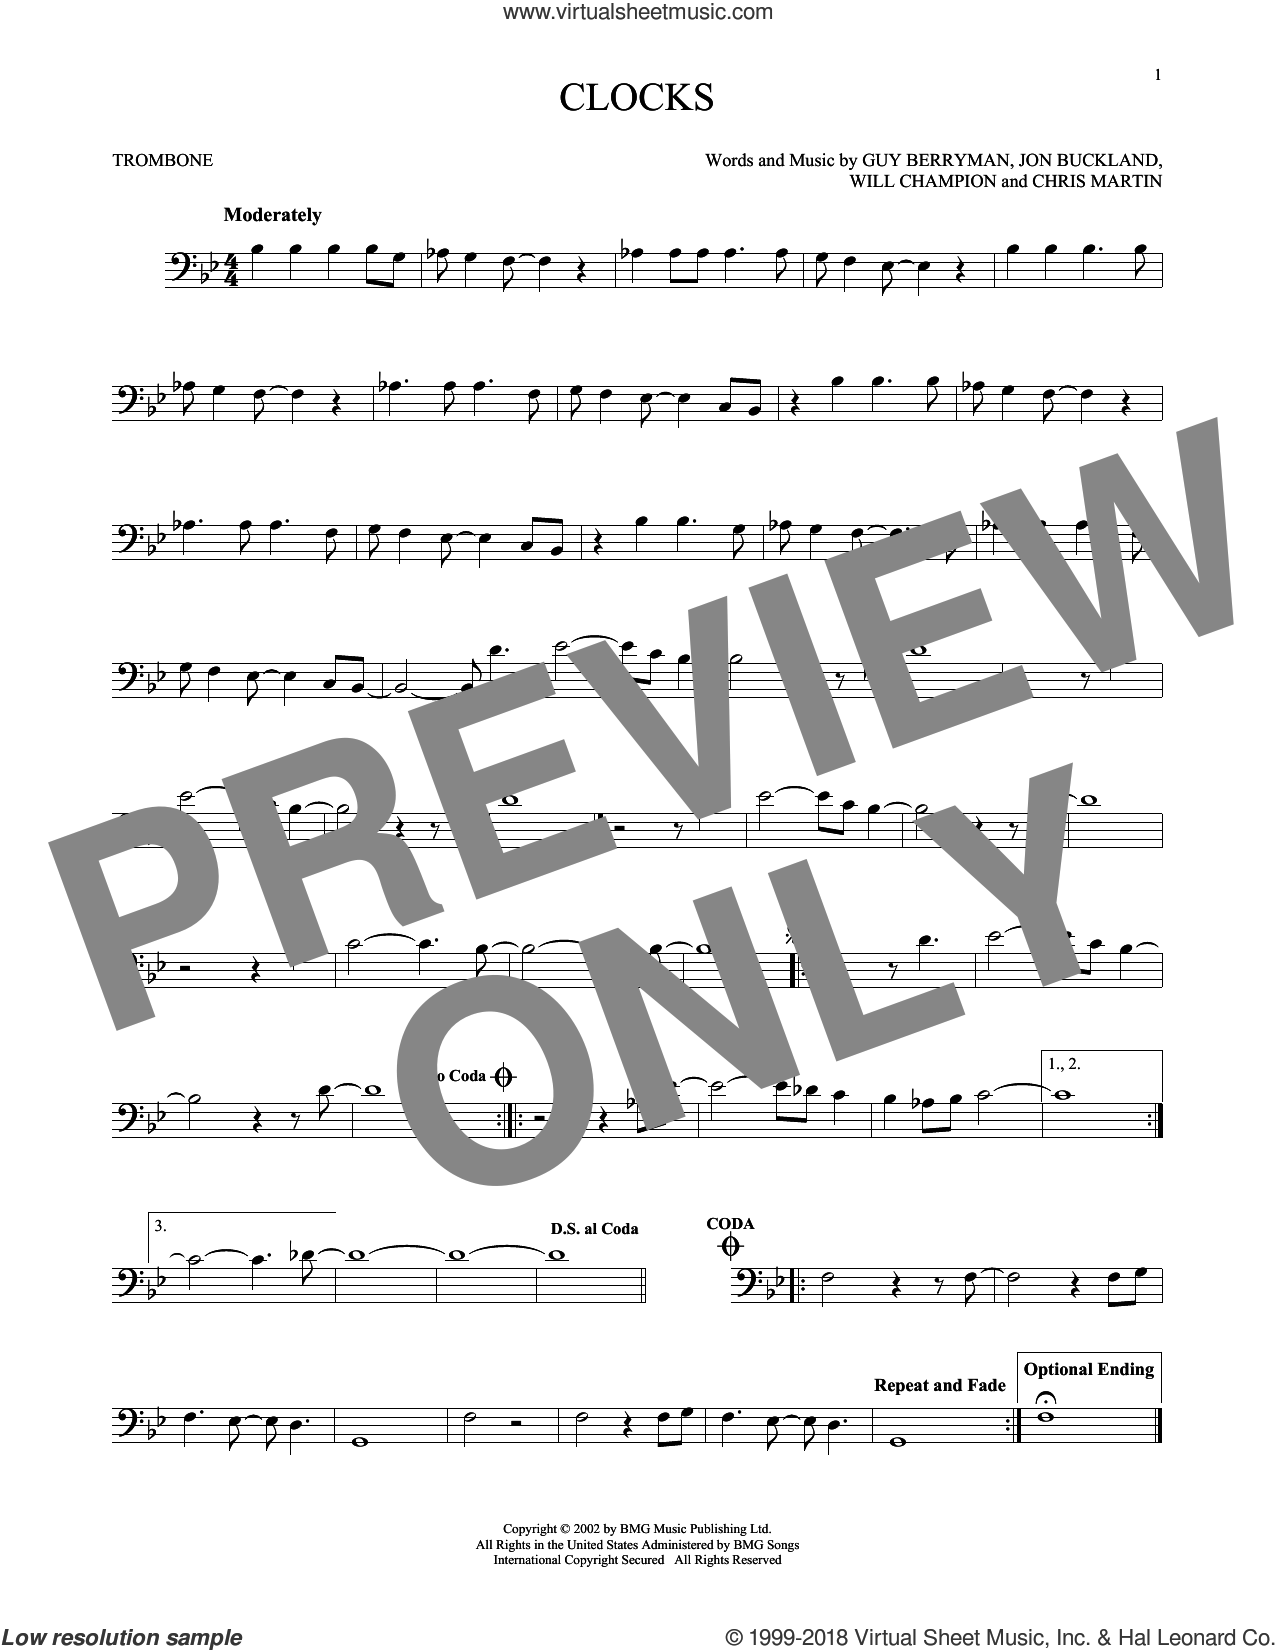 Clocks sheet music for trombone solo by Coldplay, Chris Martin, Guy Berryman, Jon Buckland and Will Champion, intermediate skill level